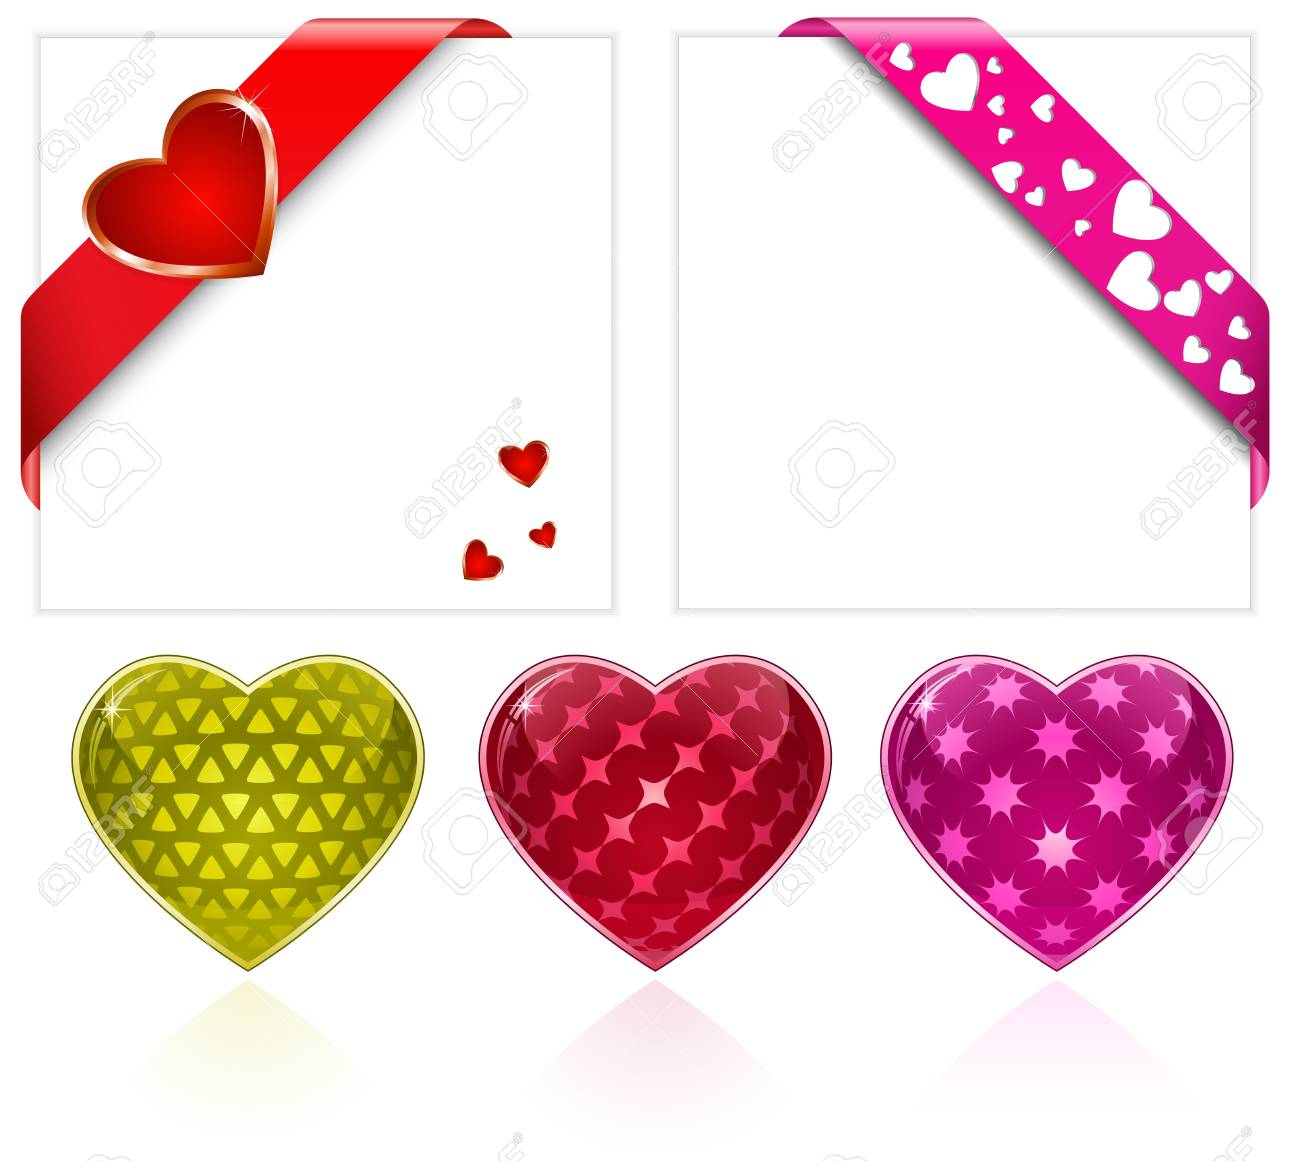 Valentine's Day. Hearts Collection. Vector Illustration Stock Photo - 11889095